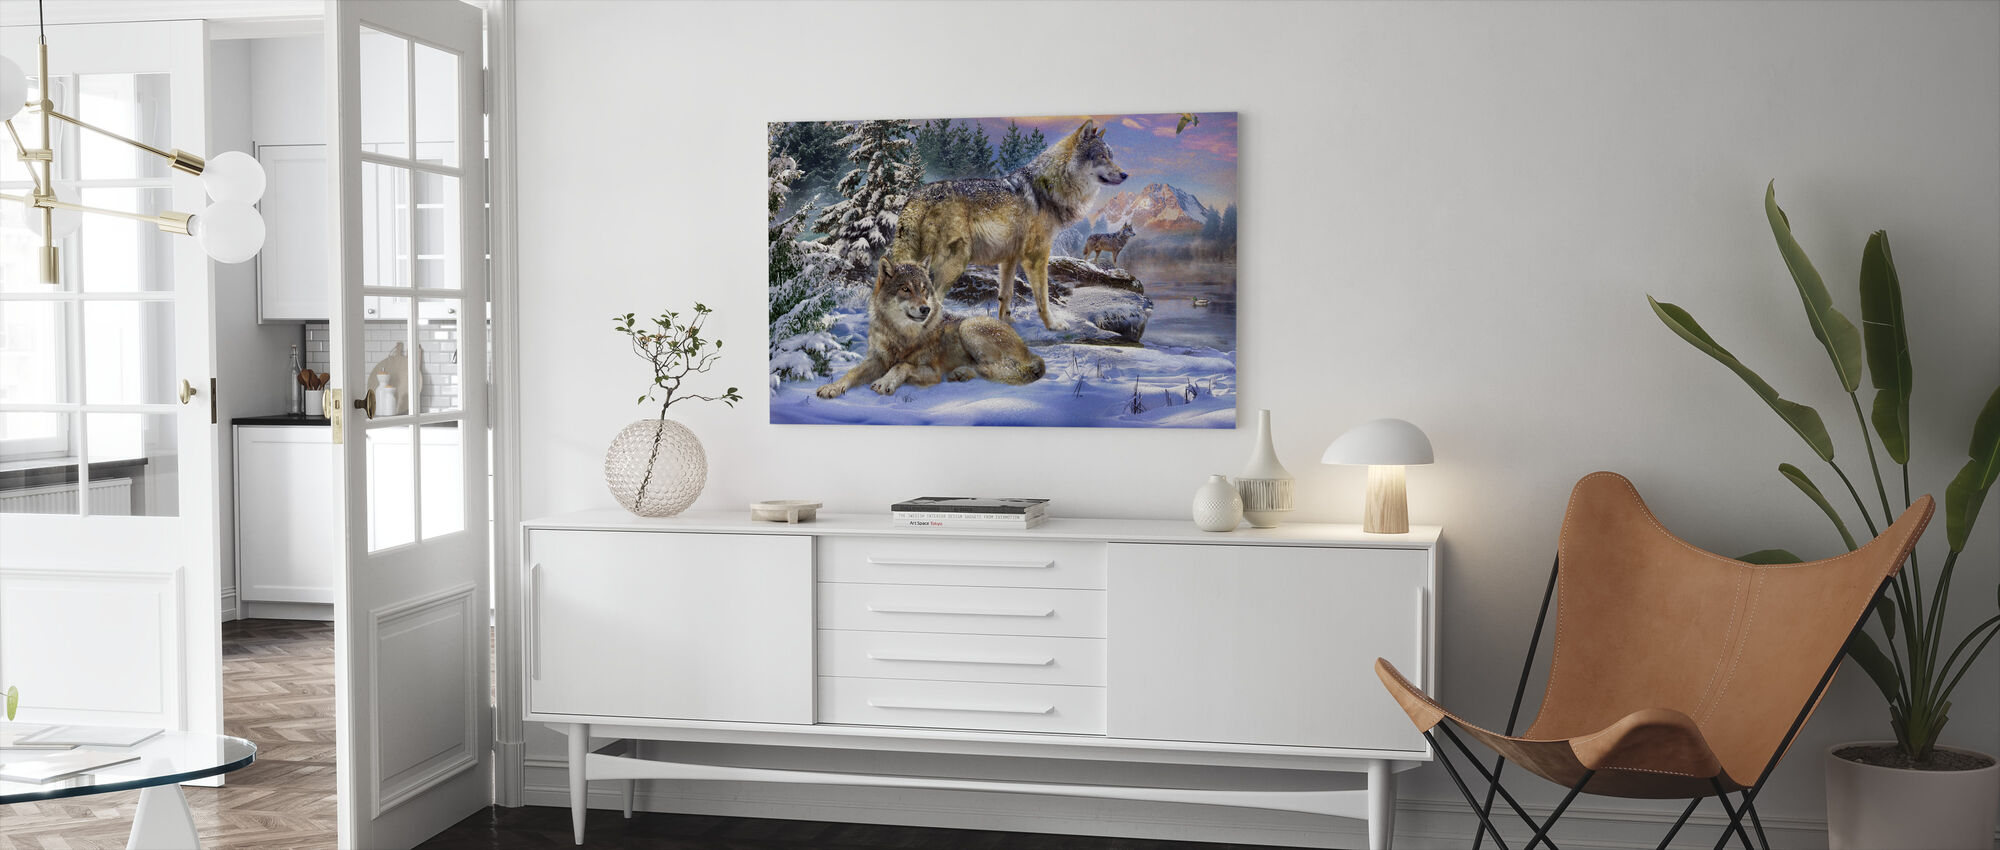 Wolves in Winter - Canvas print - Living Room